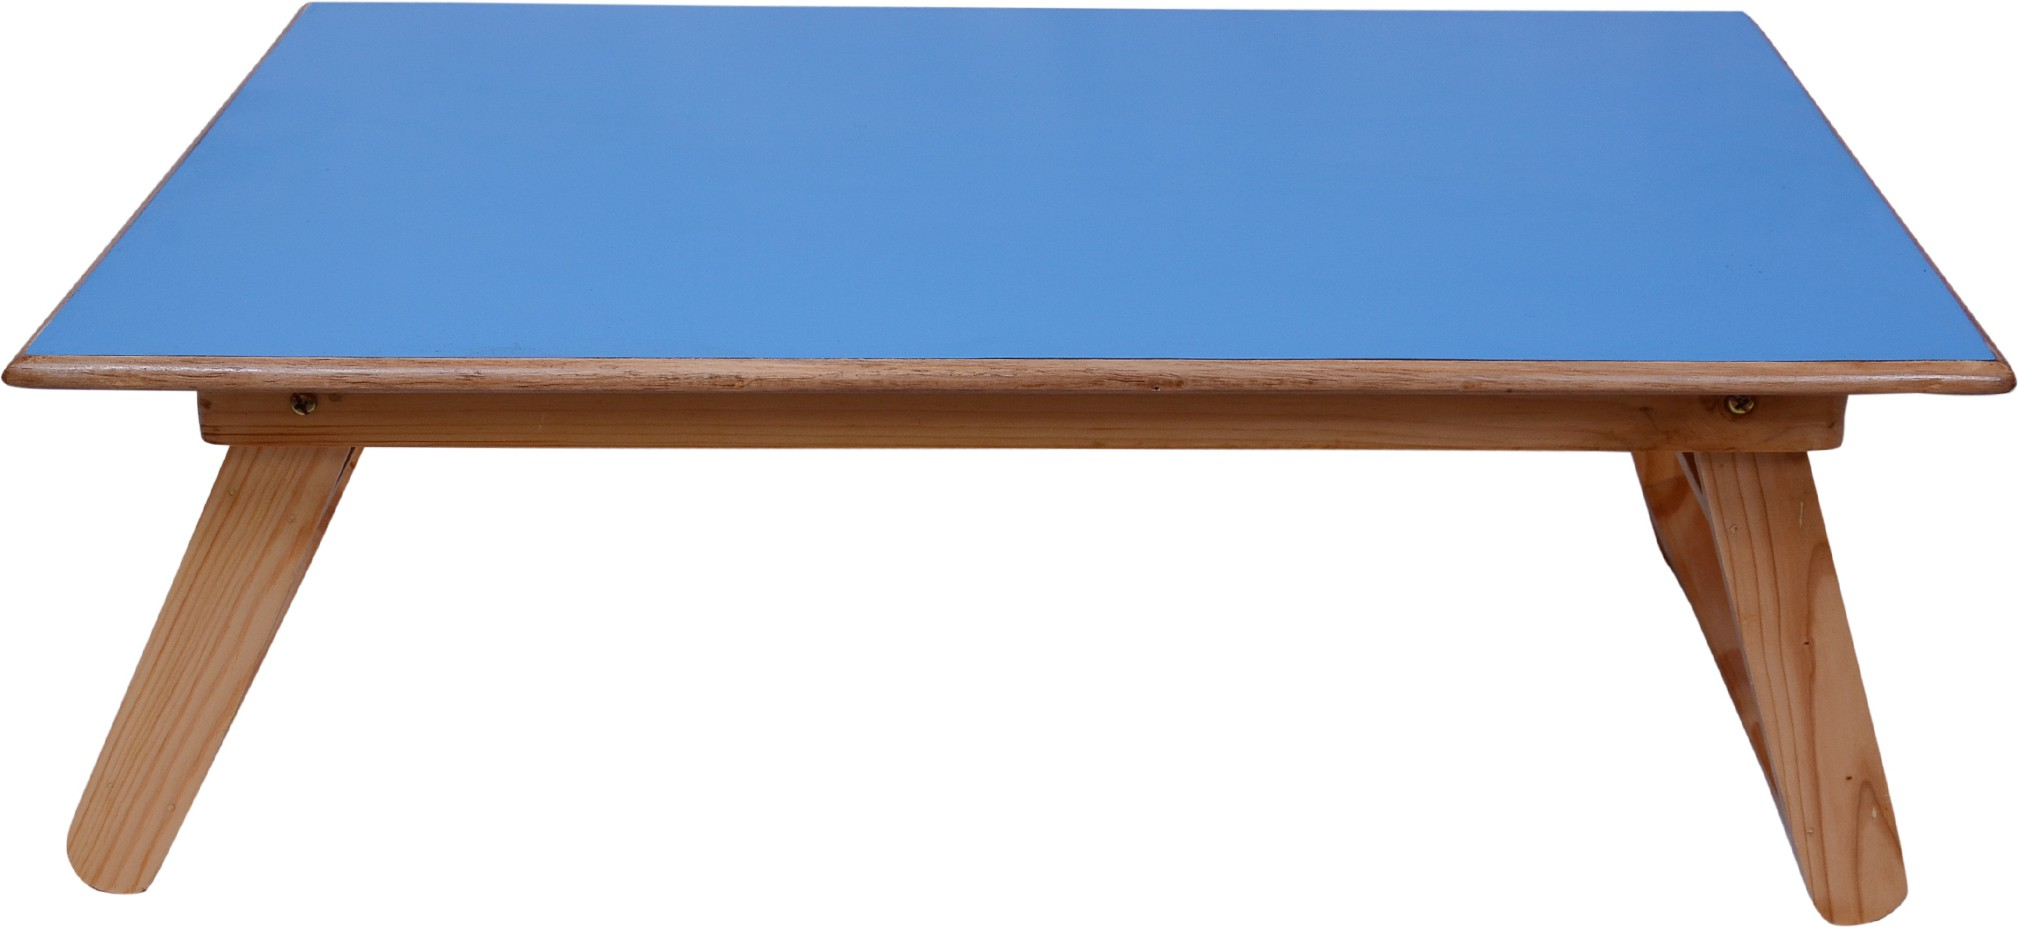 View Wood O Plast Engineered Wood Portable Laptop Table(Finish Color - Blue) Furniture (Wood O Plast)